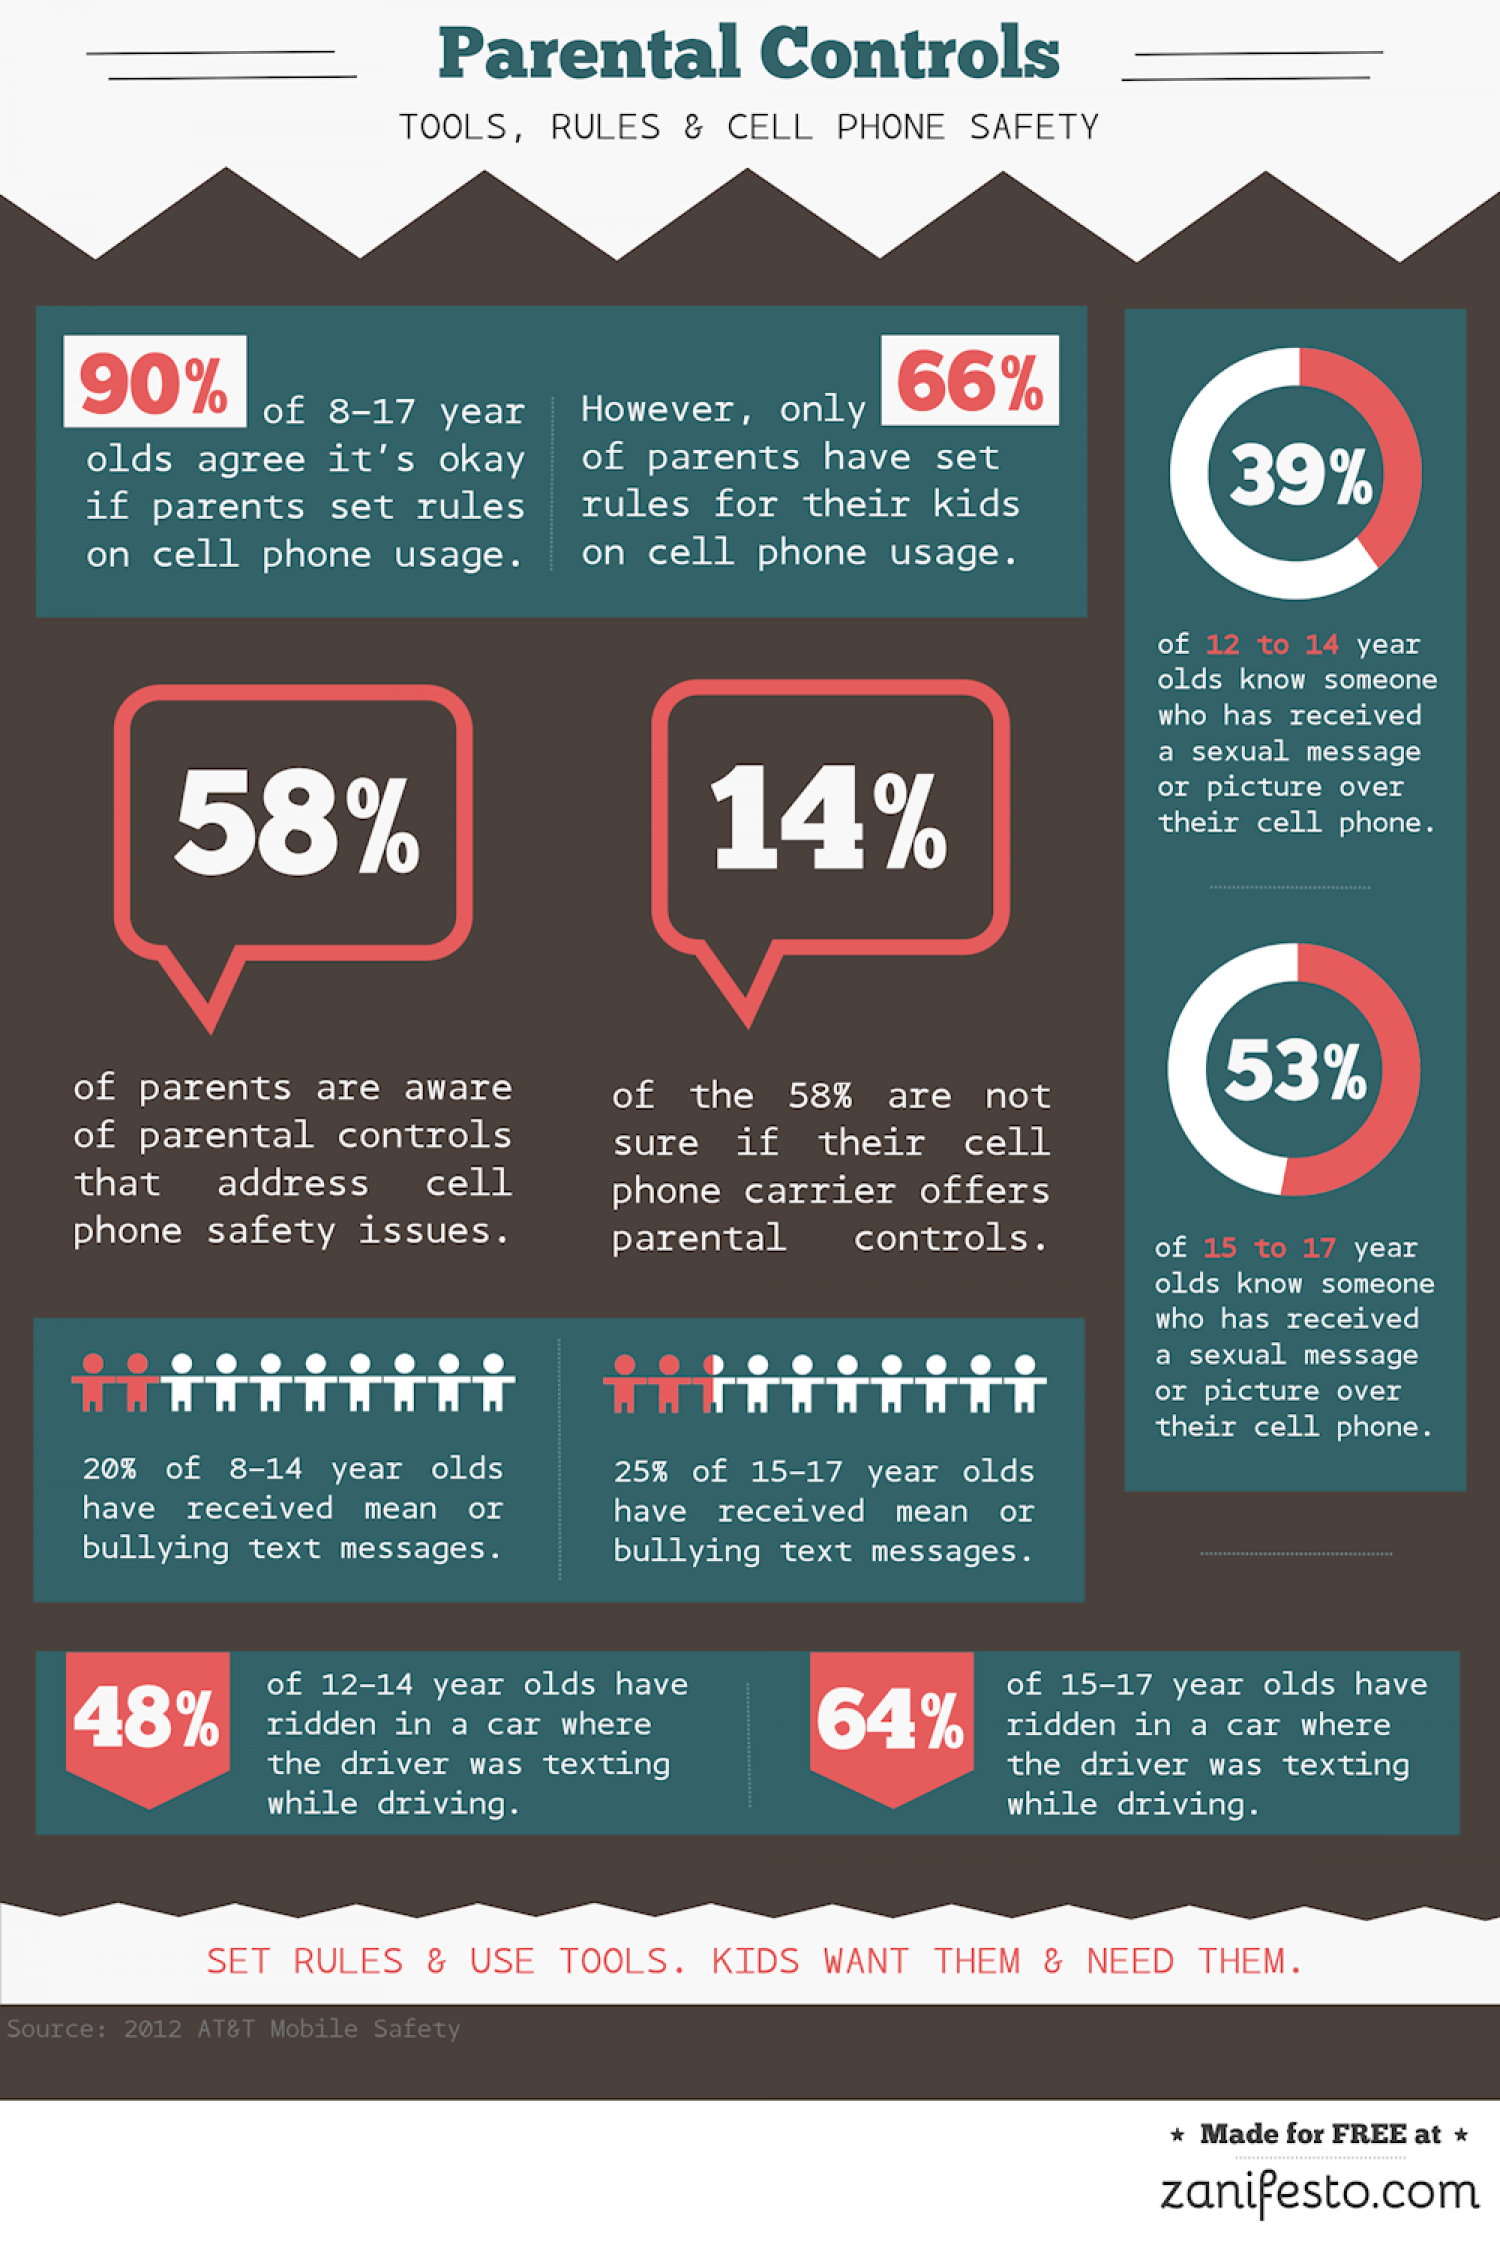 Parental Controls - Rules, Tools, and Child Cell Phone Safety Infographic